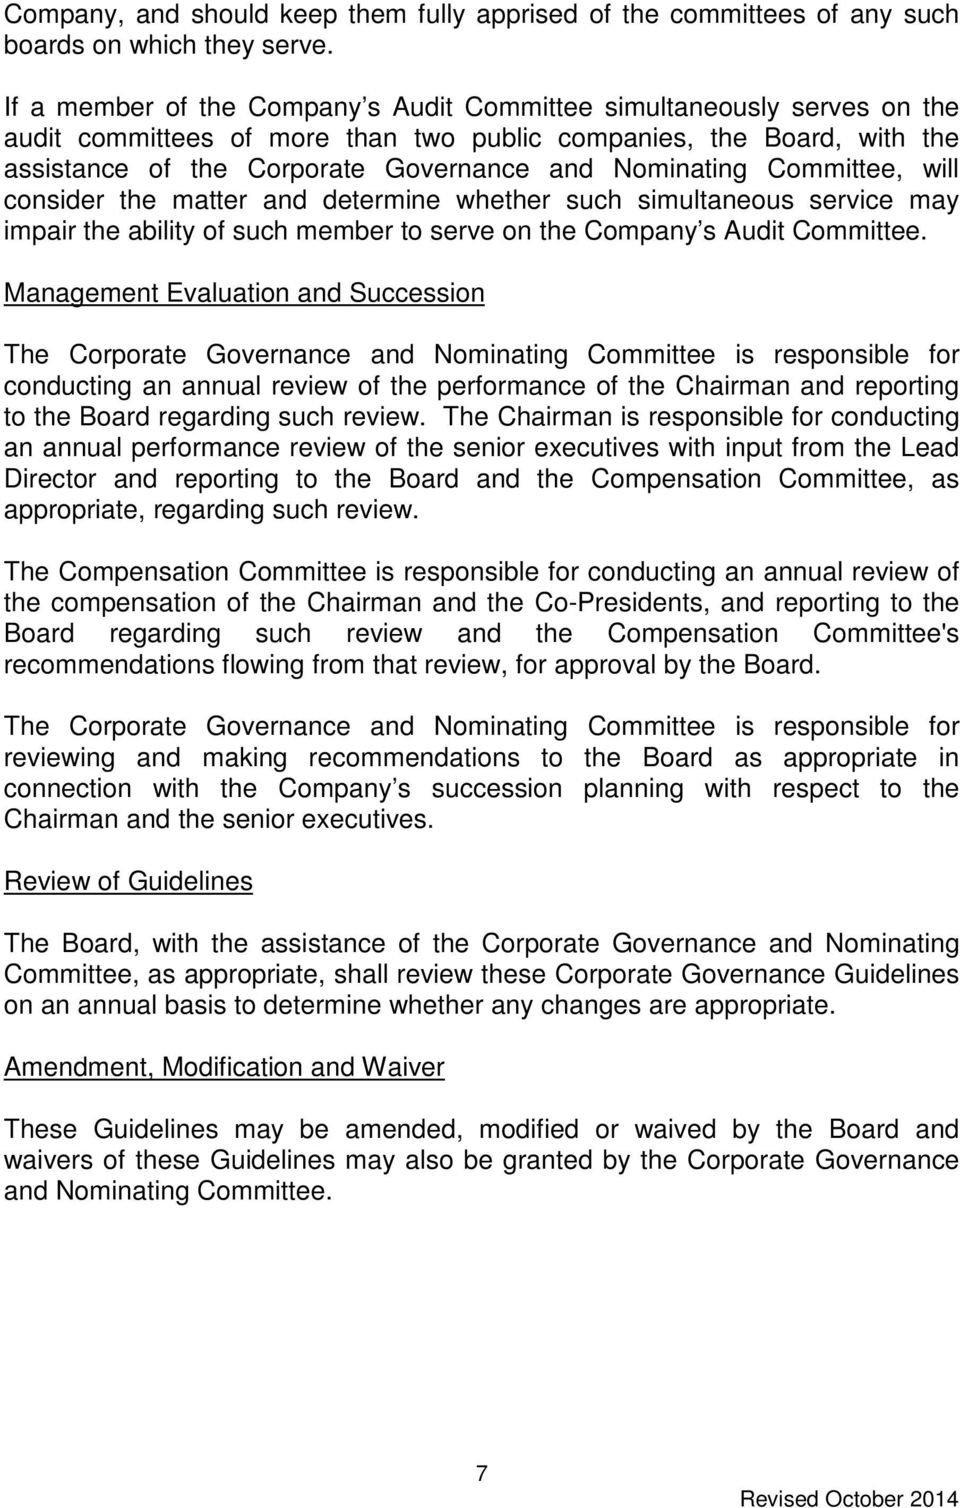 Committee, will consider the matter and determine whether such simultaneous service may impair the ability of such member to serve on the Company s Audit Committee.